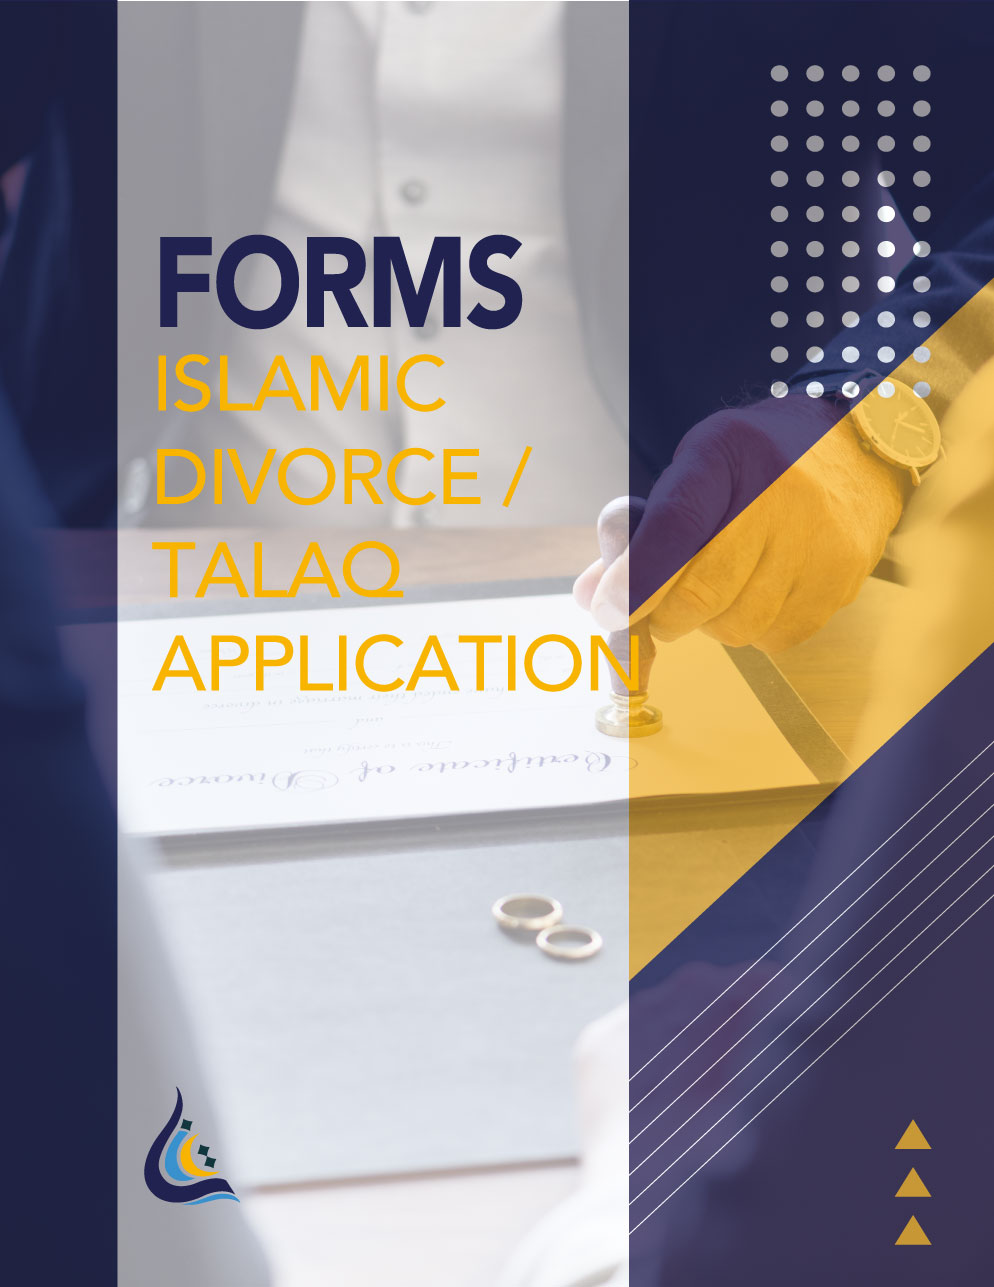 Islamic Divorce / Talaq Application Form Download